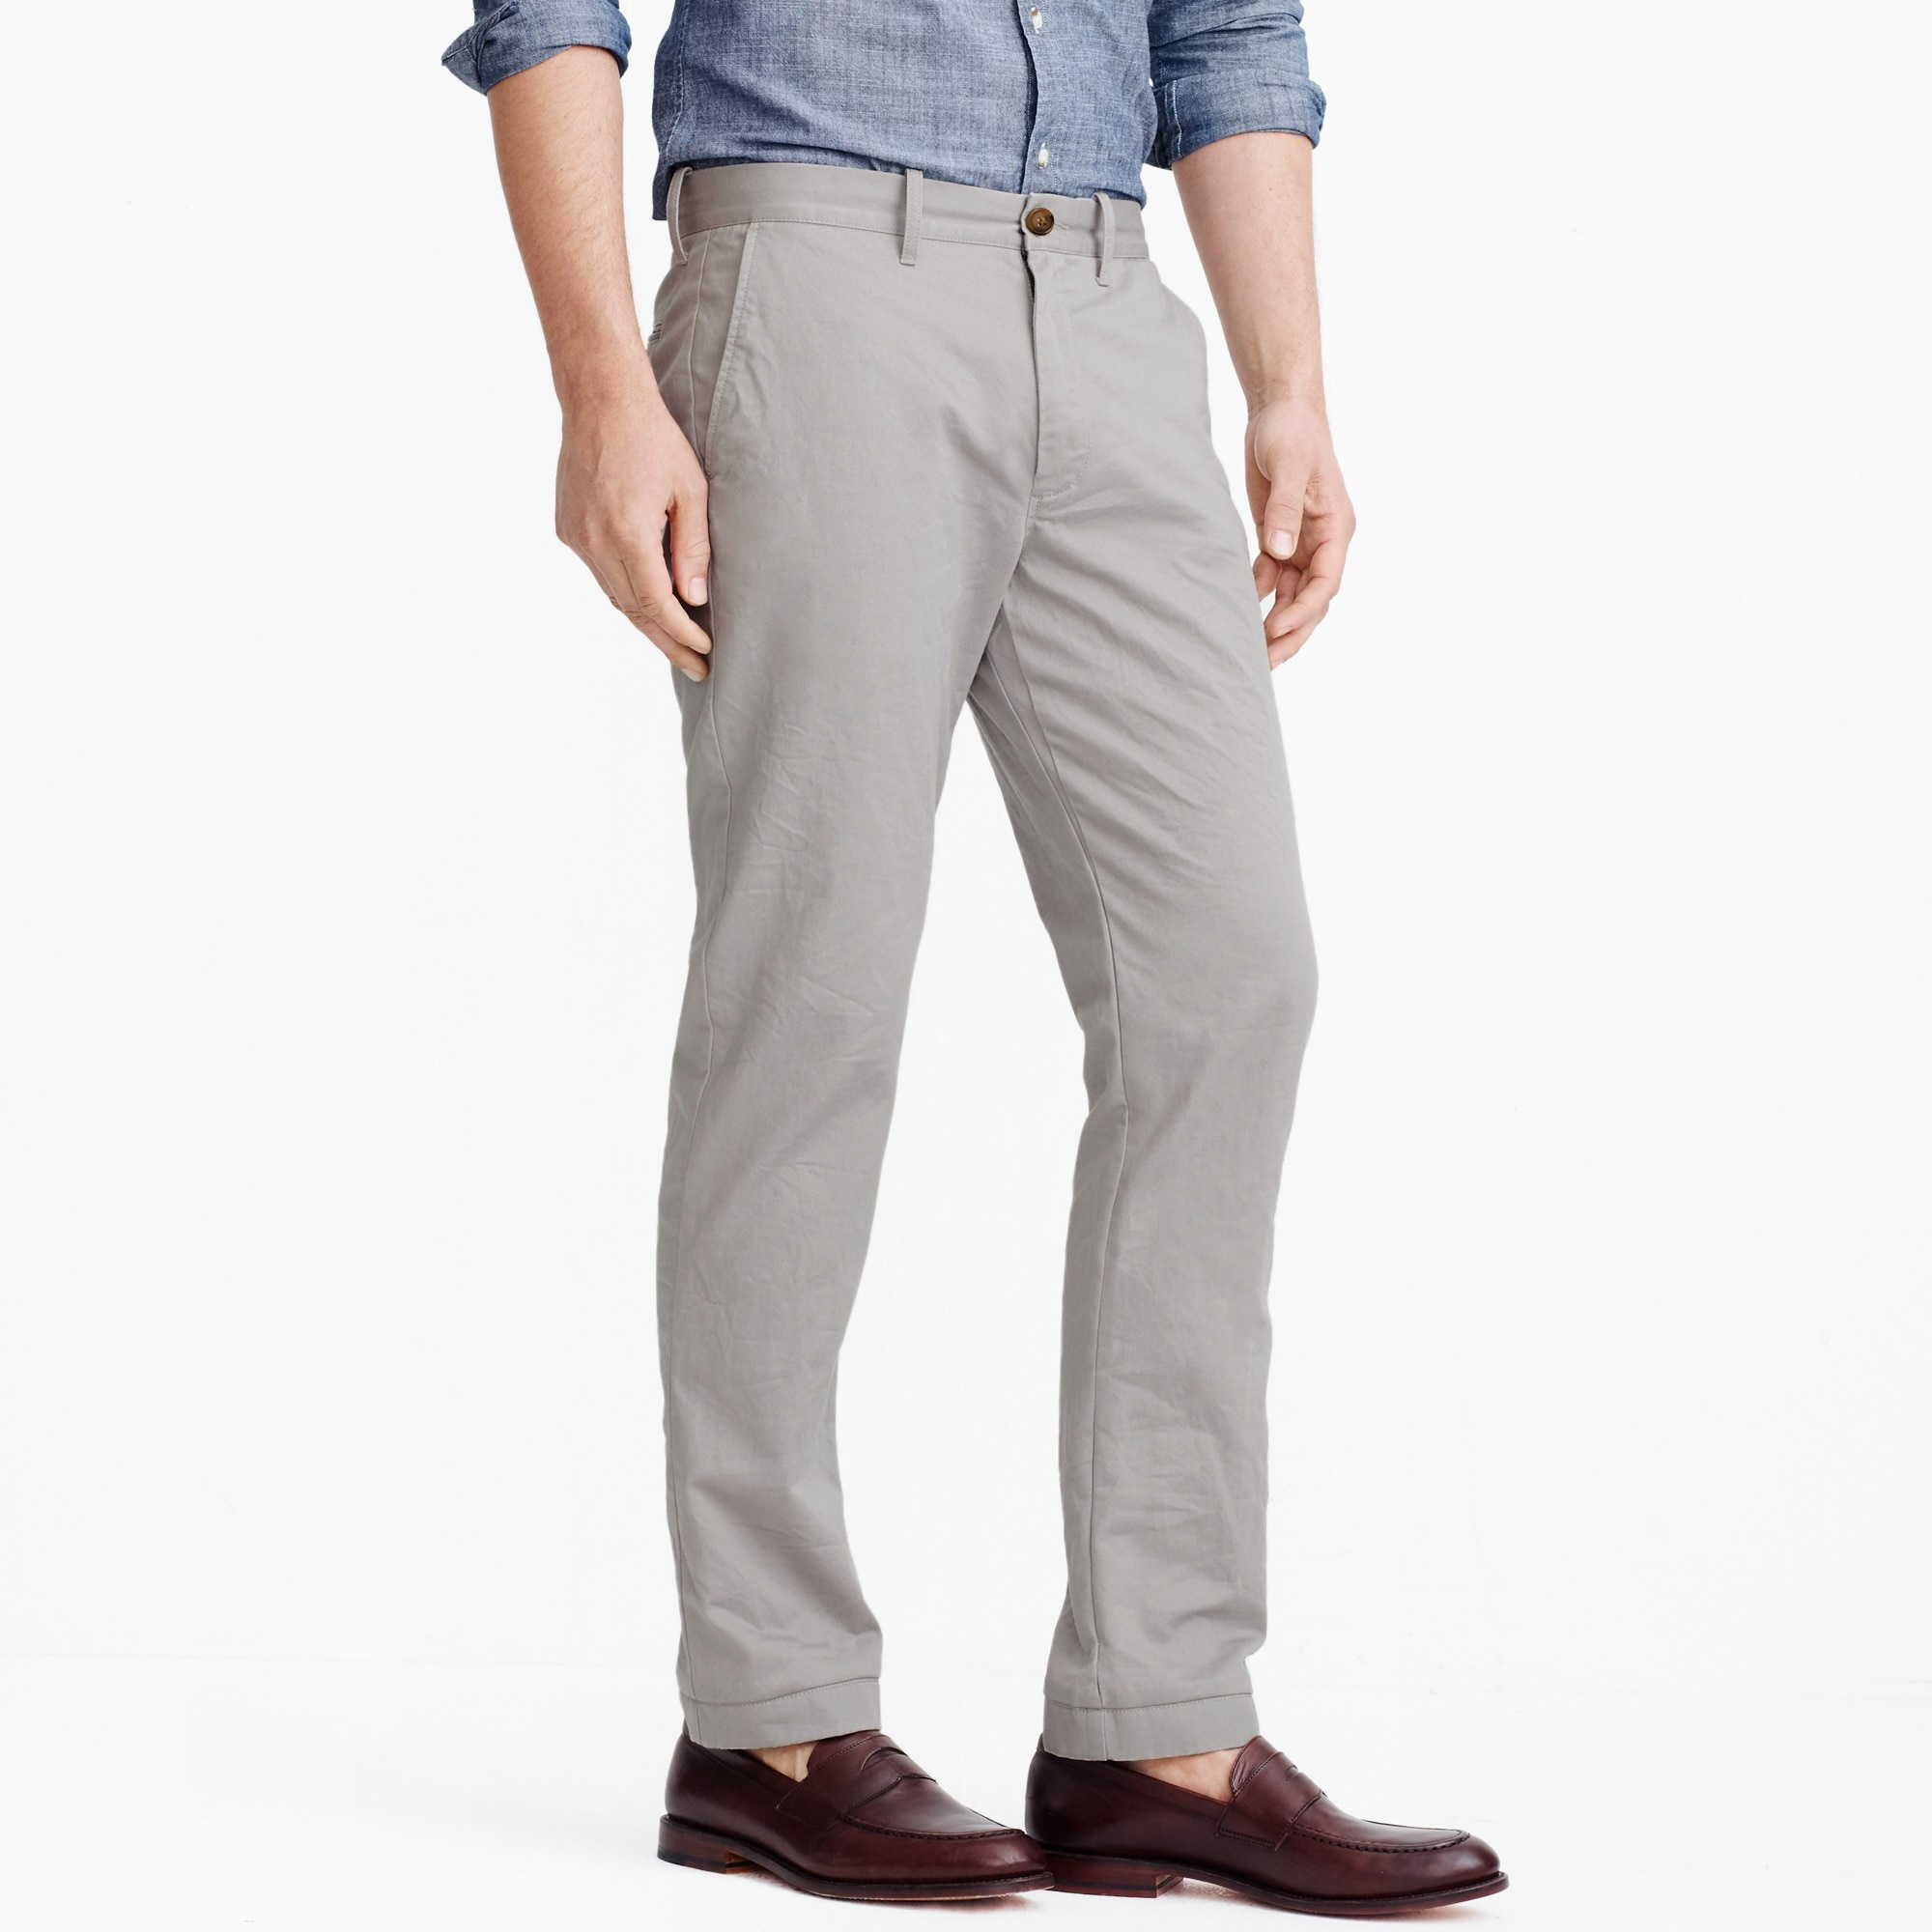 Image 2 for Straight-fit broken-in chino